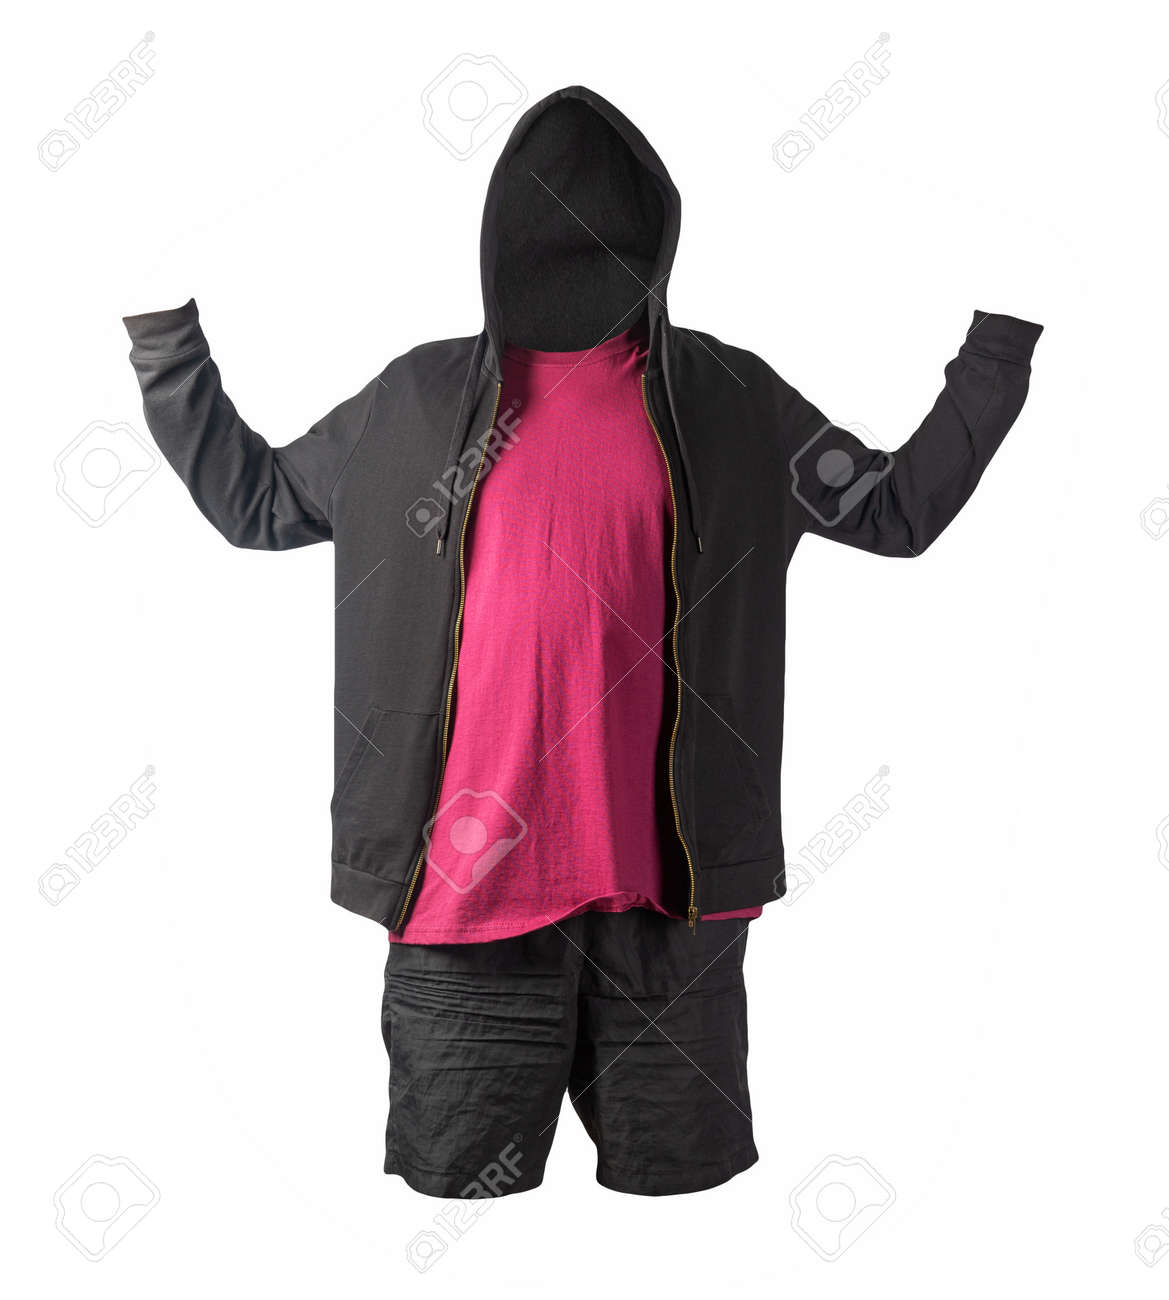 black sweatshirt with iron zipper hoodie, burgundy t-shirt and black sports shorts isolated on white background. casual sportswear - 172140041